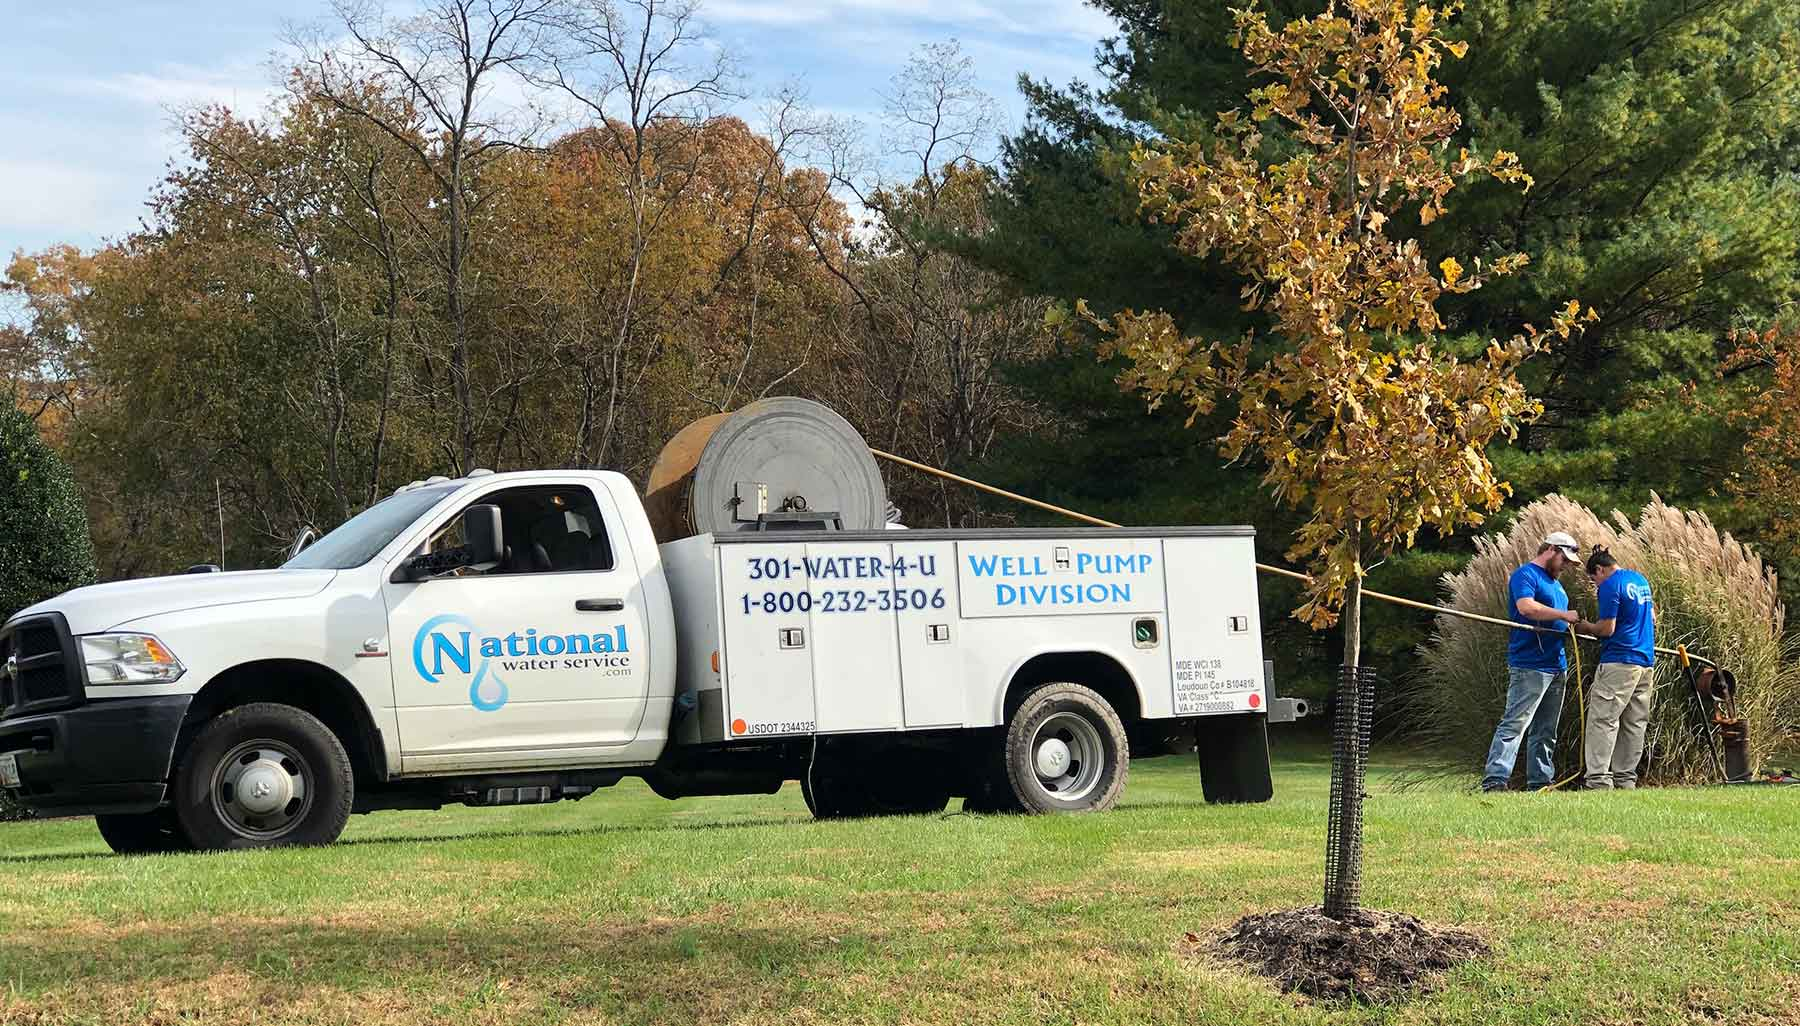 National Water Service Truck